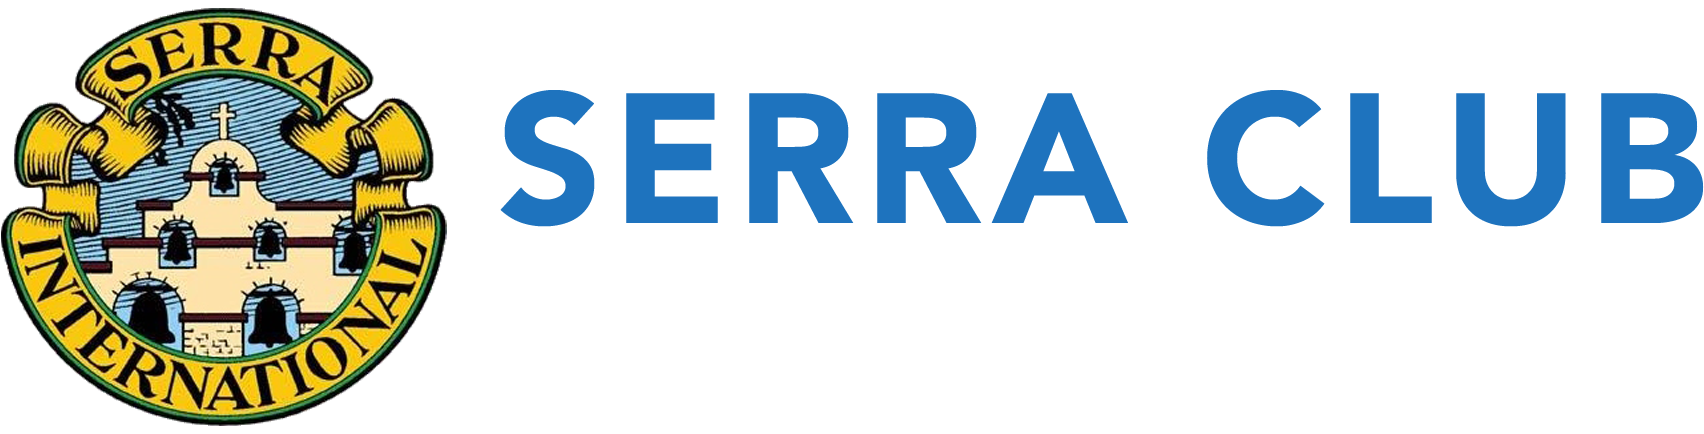 Serra Club of DuPage County